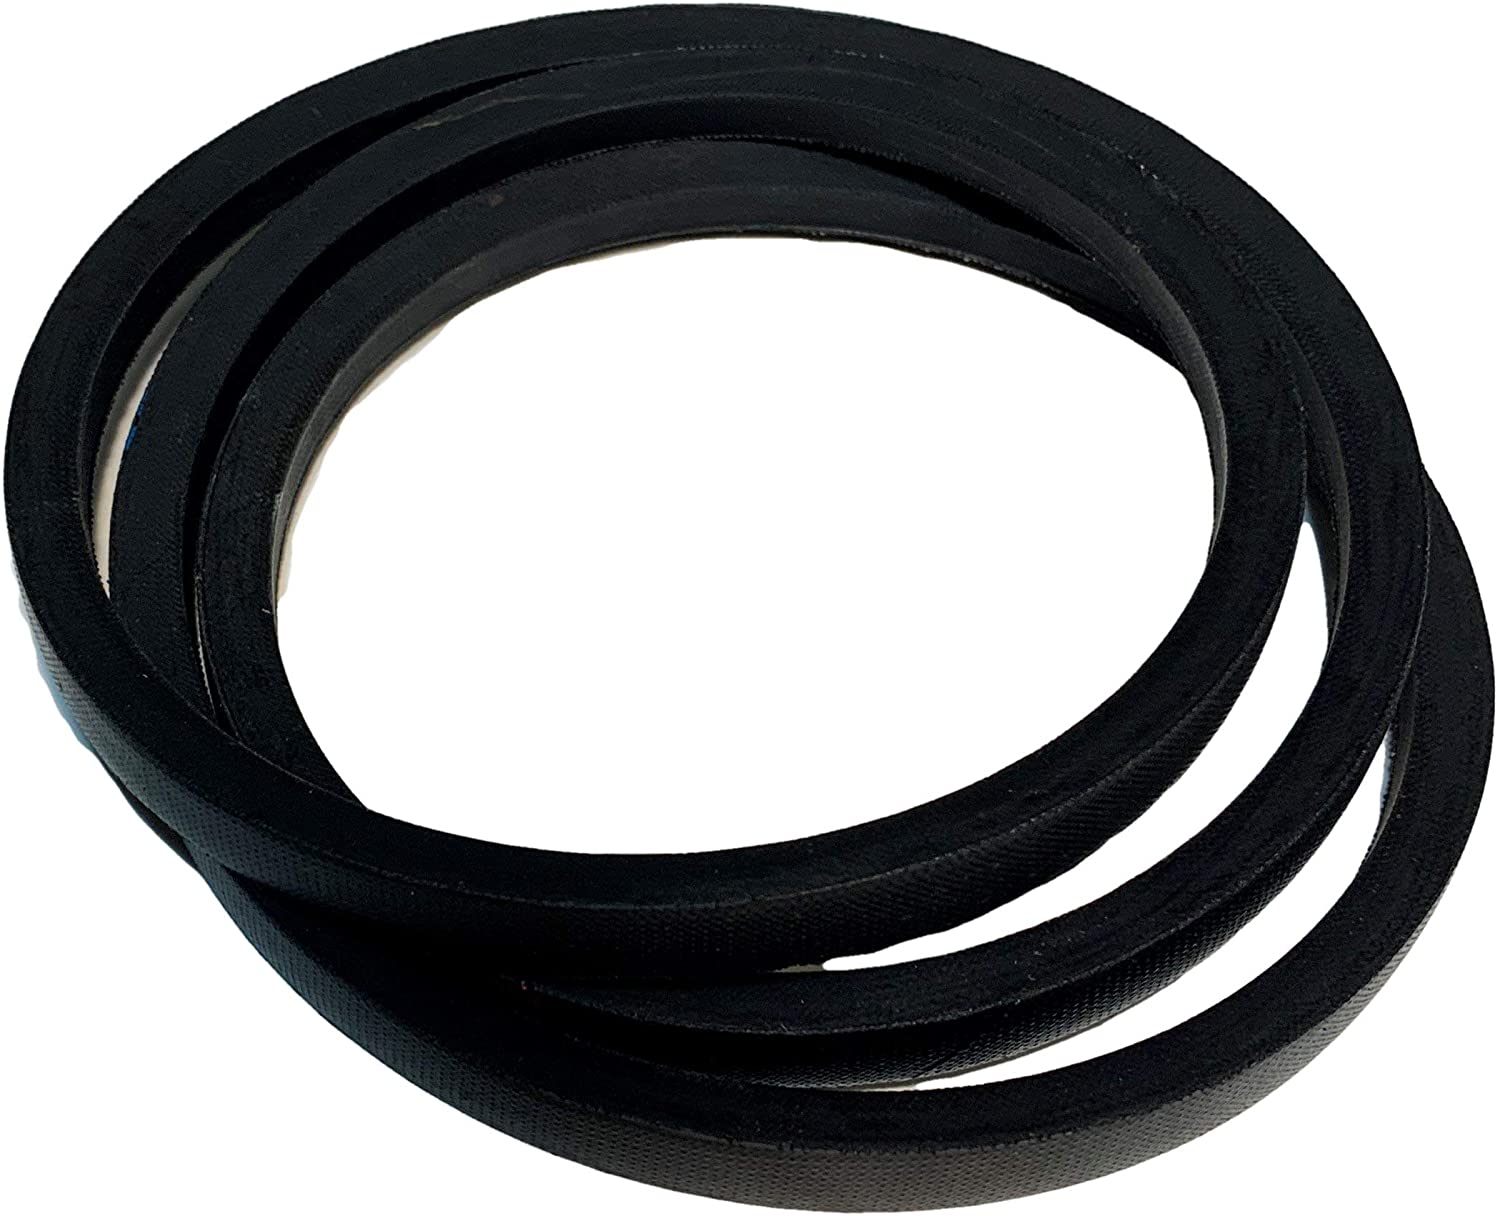 Sellerocity Brand Belt Compatible with Massey Ferguson 402188M1 35124A 581460M91 834032M1